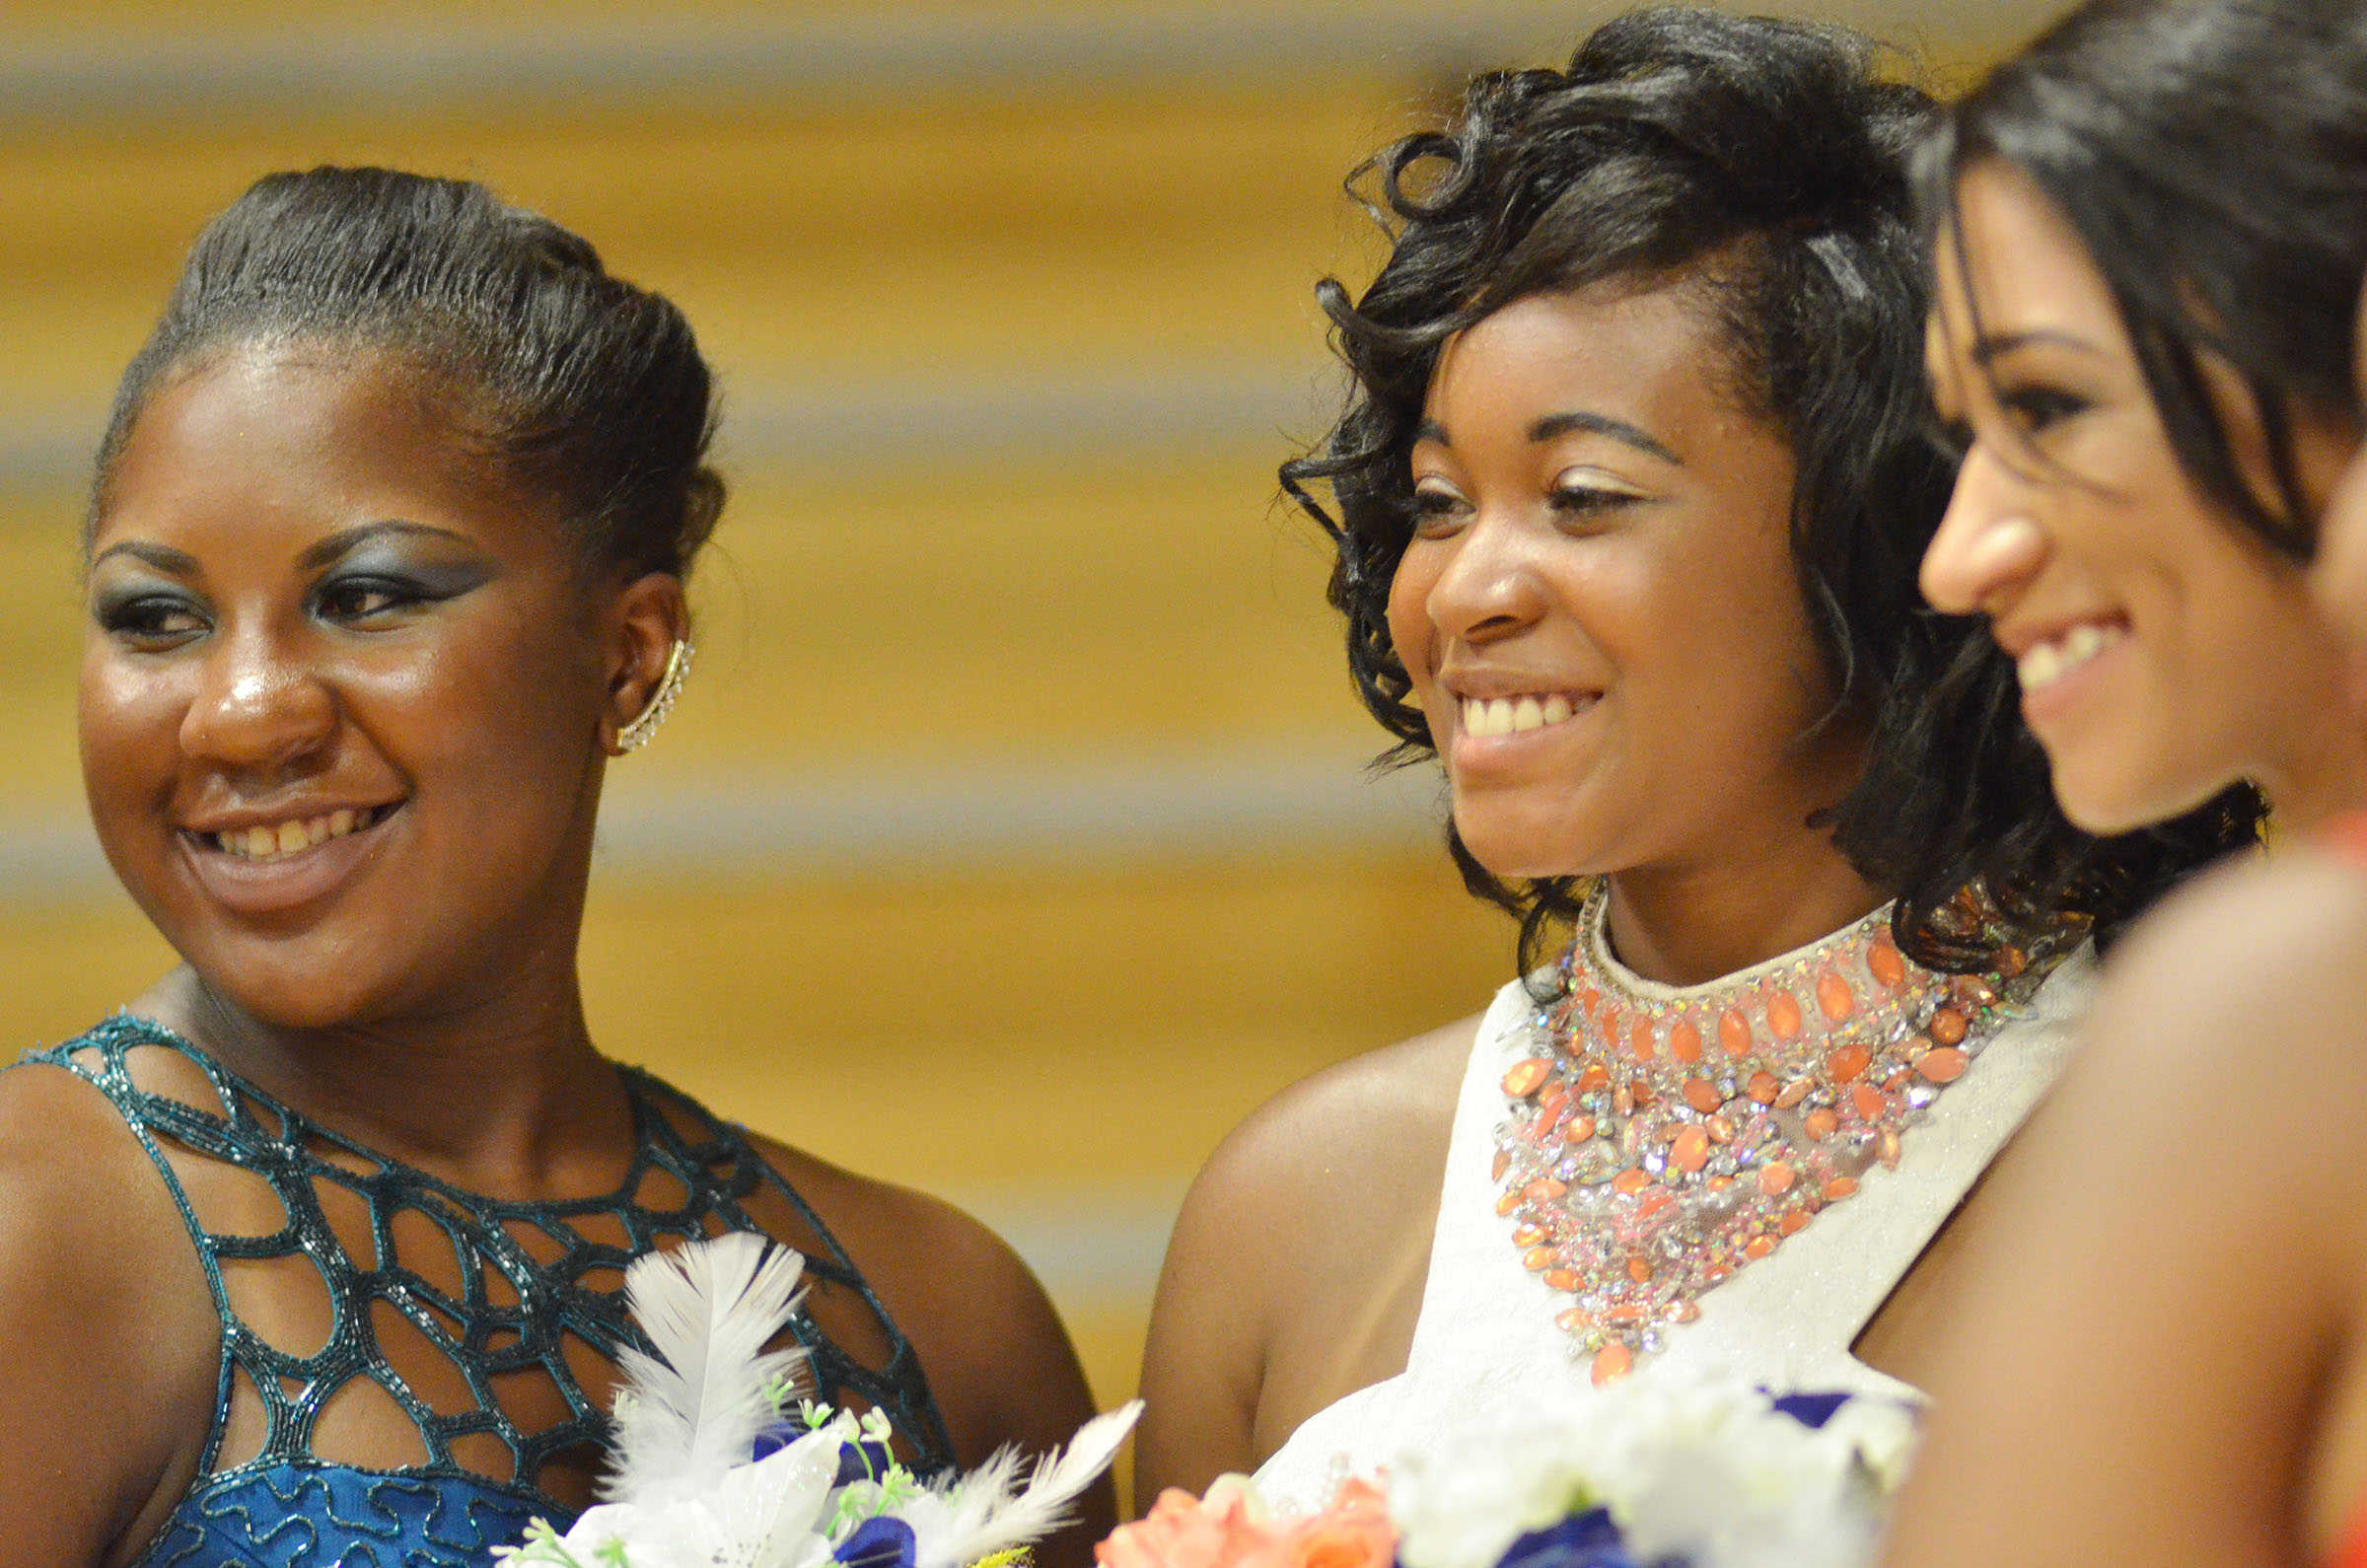 From left, CHS juniors Kiyah Barnett and Vonnea Smith and senior Alexis Shears smile for a photo at prom walk.